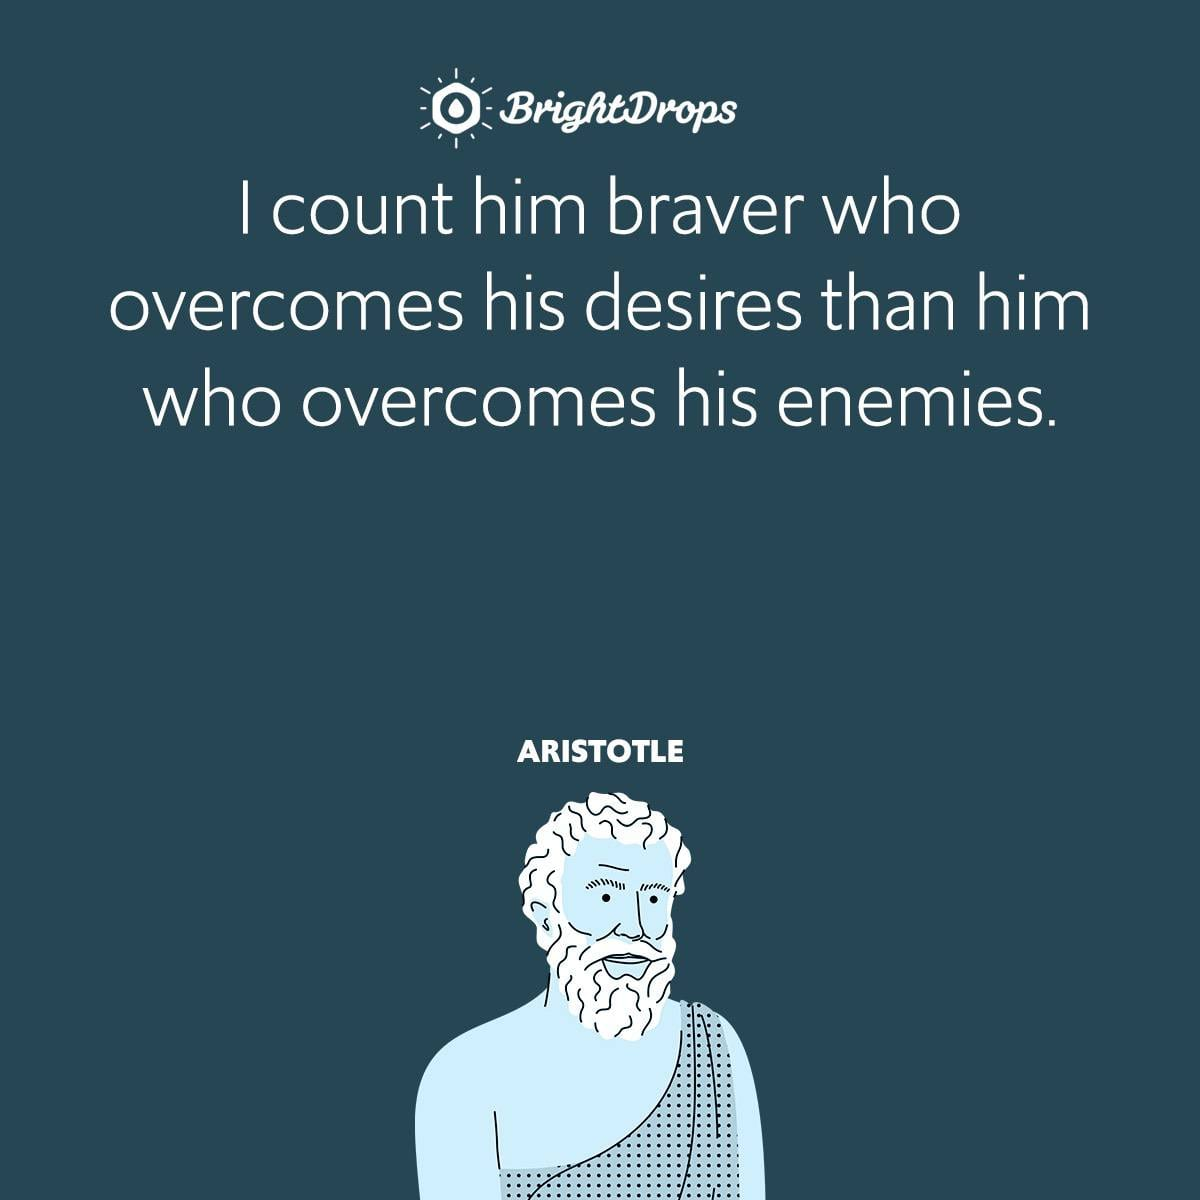 I count him braver who overcomes his desires than him who overcomes his enemies.